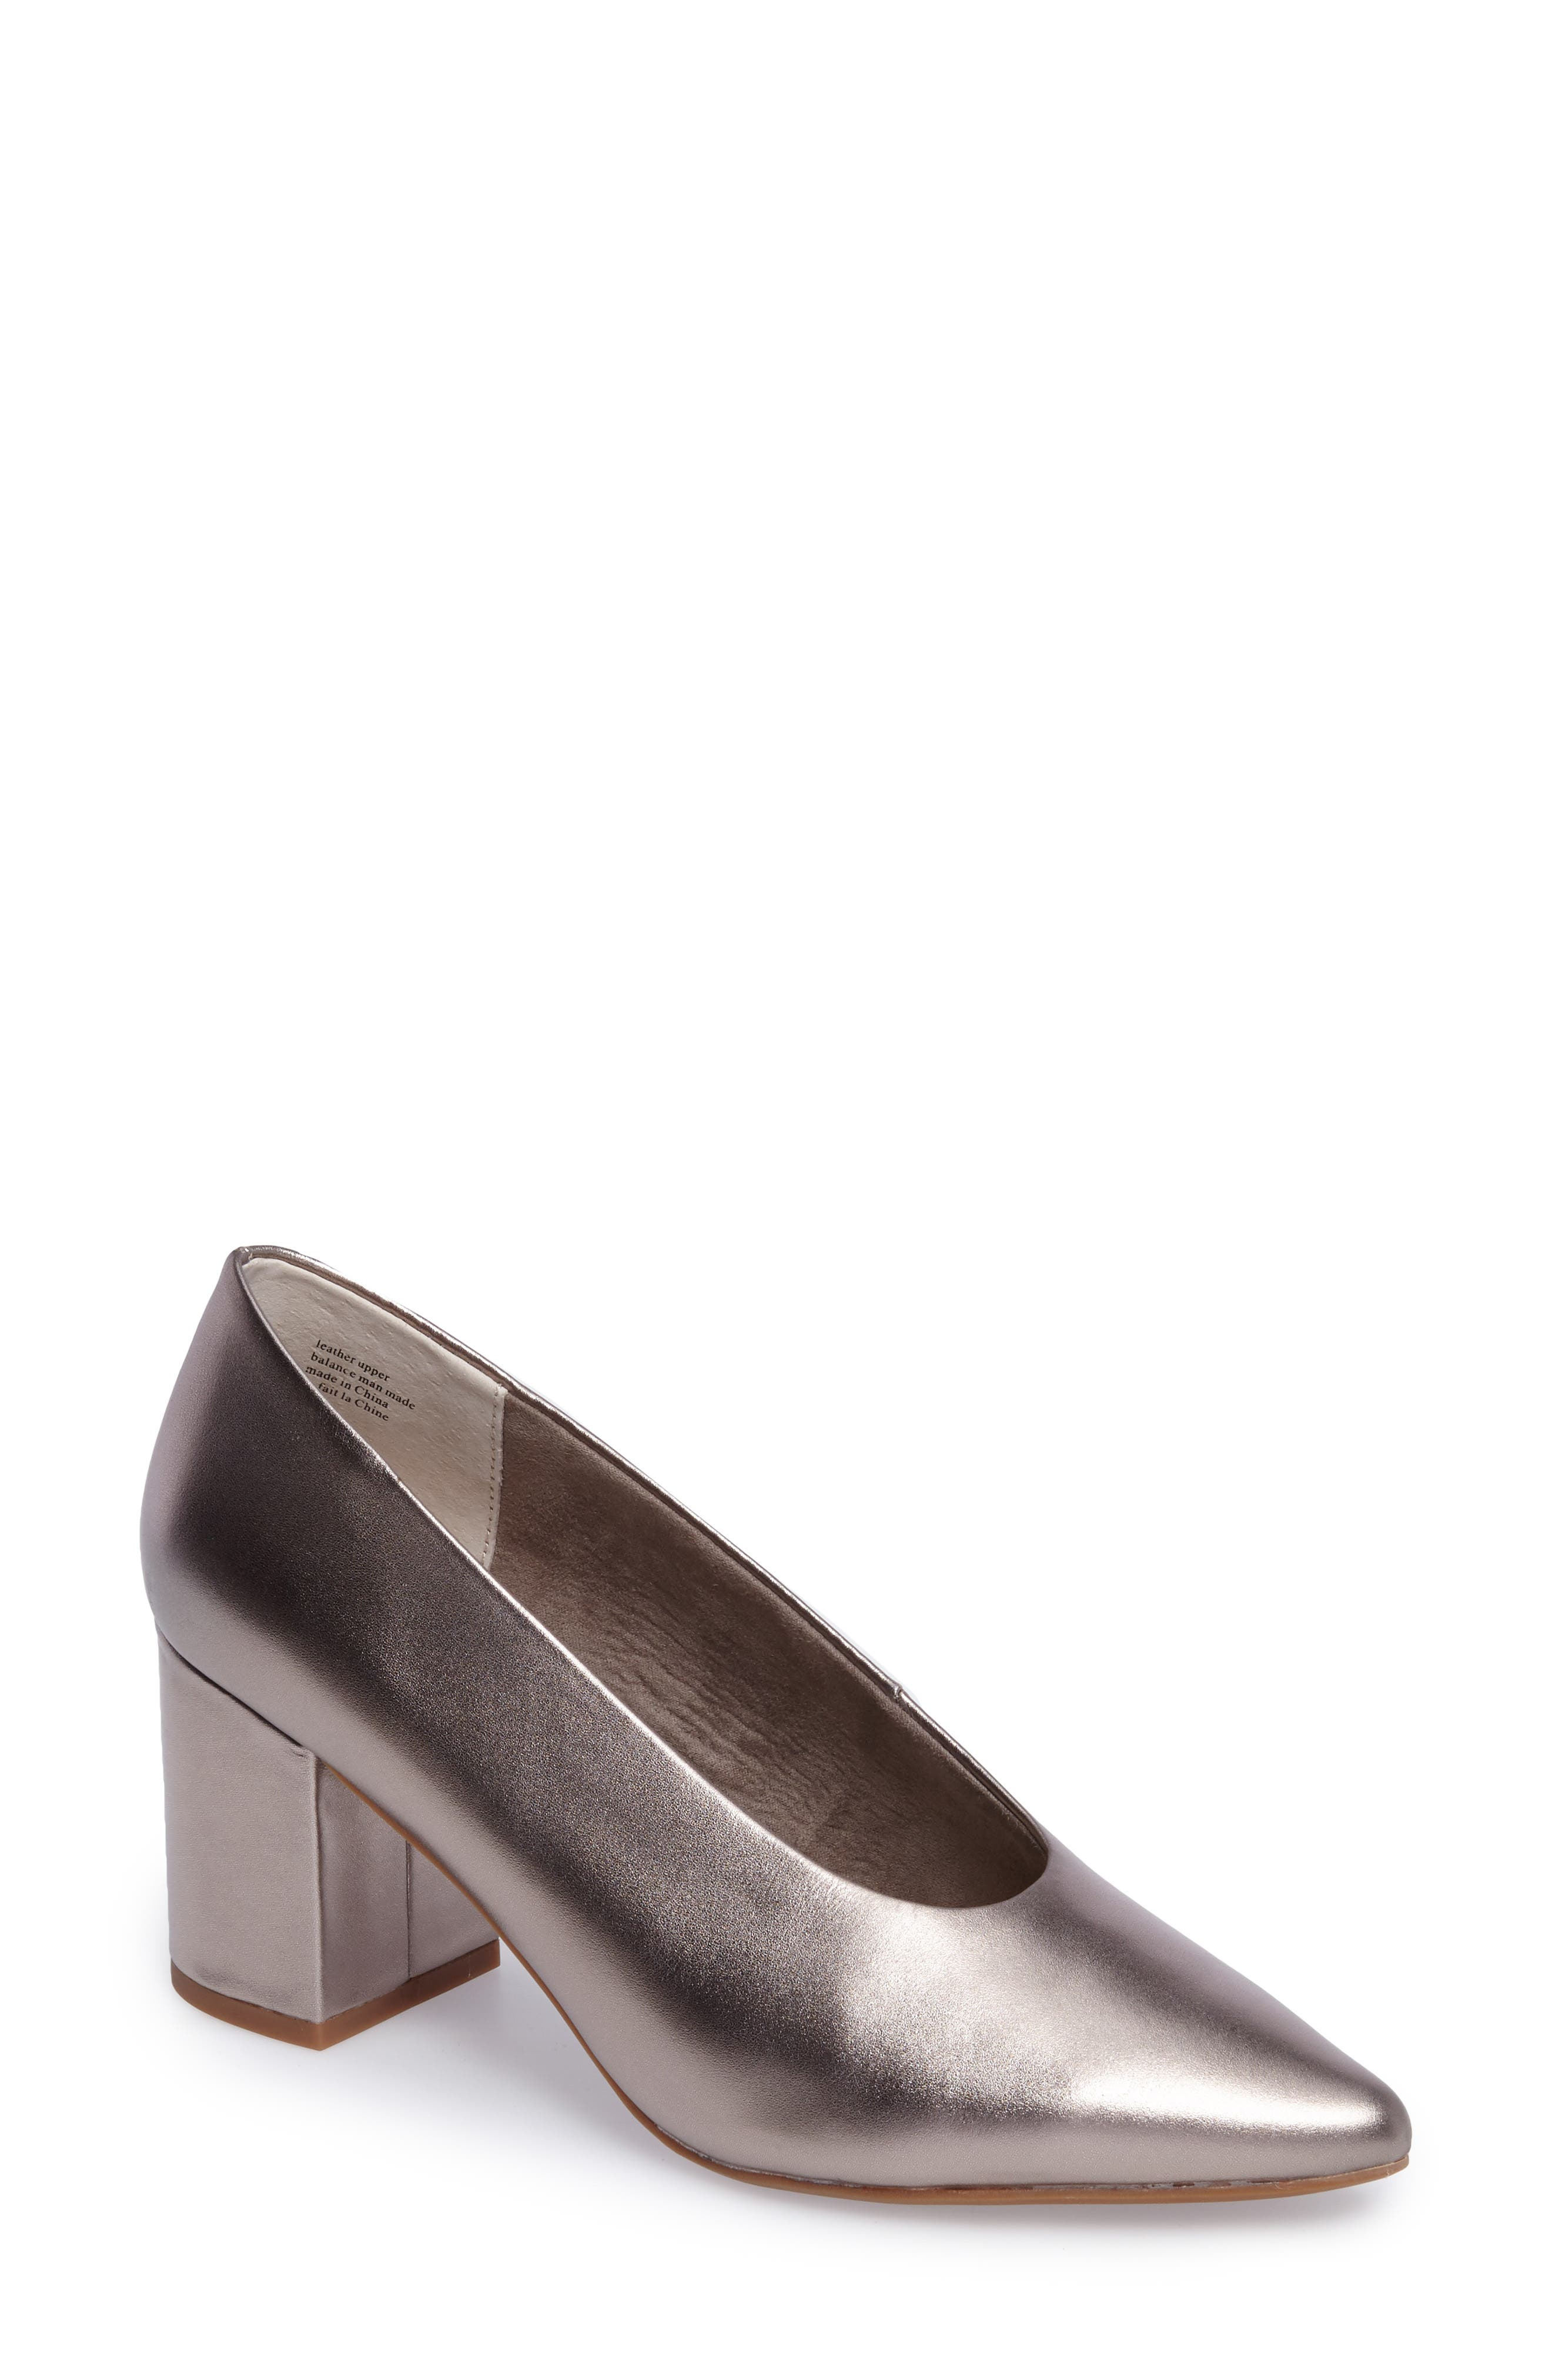 Rehearse Pointy Toe Pump,                         Main,                         color, Pewter Leather